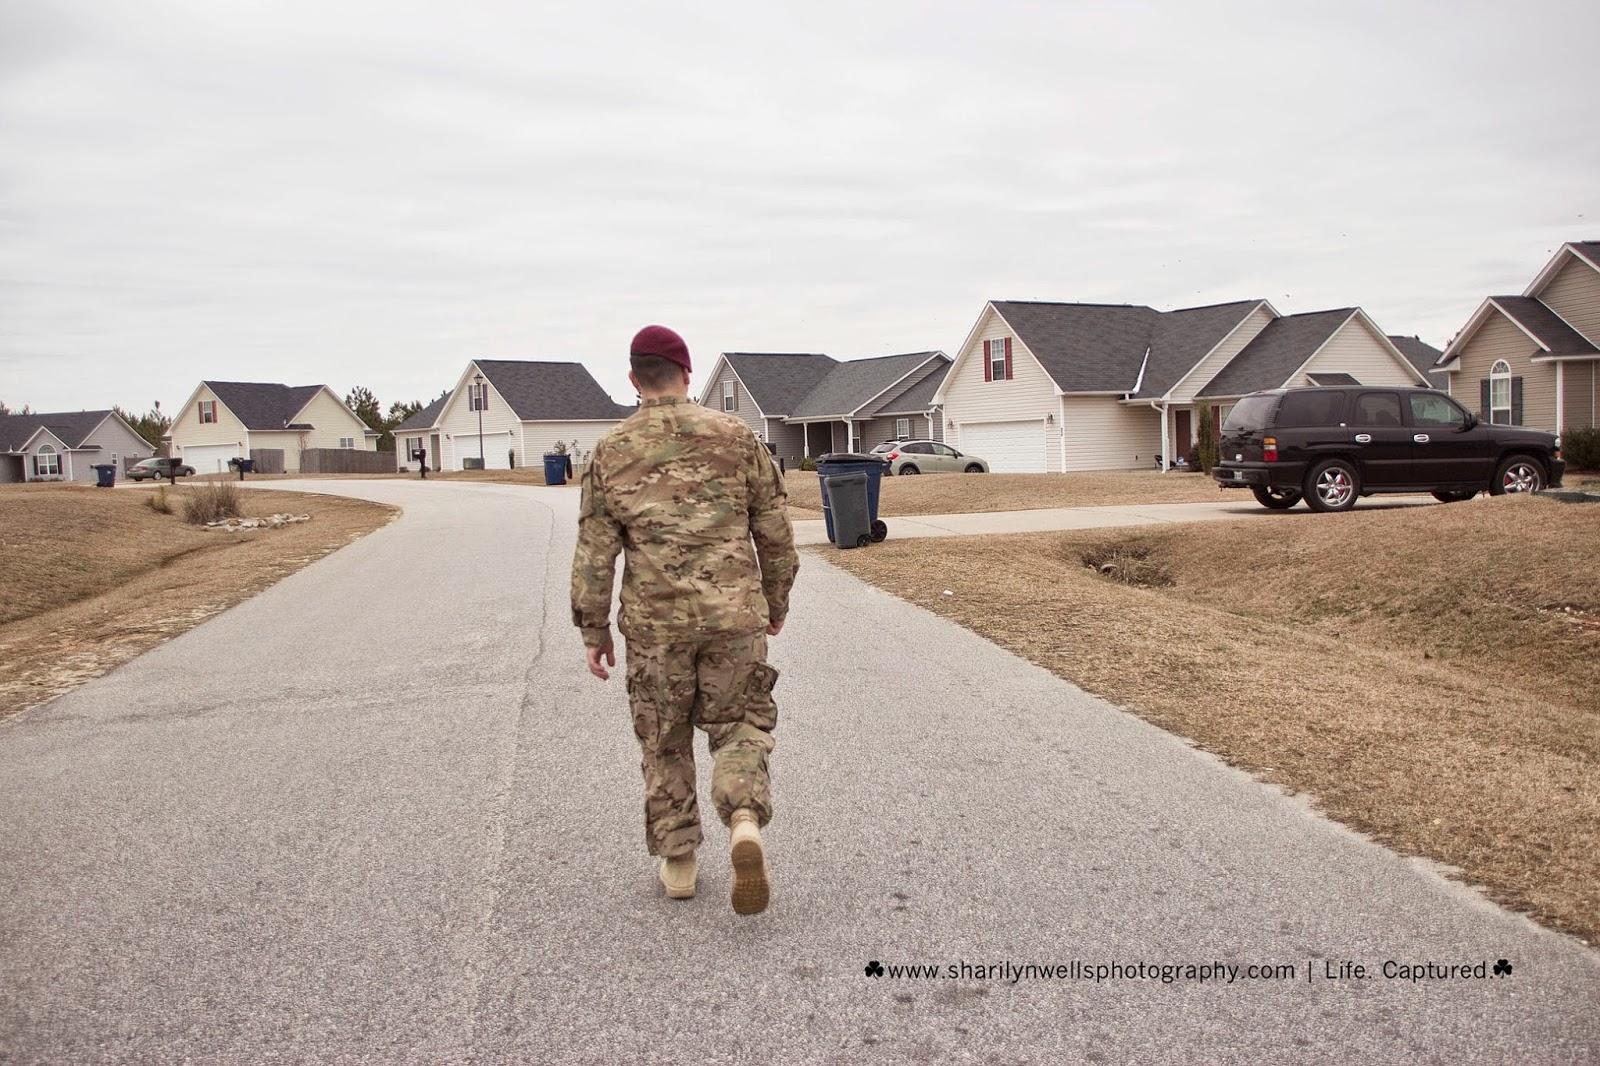 Soldiers coming home surprising loved ones